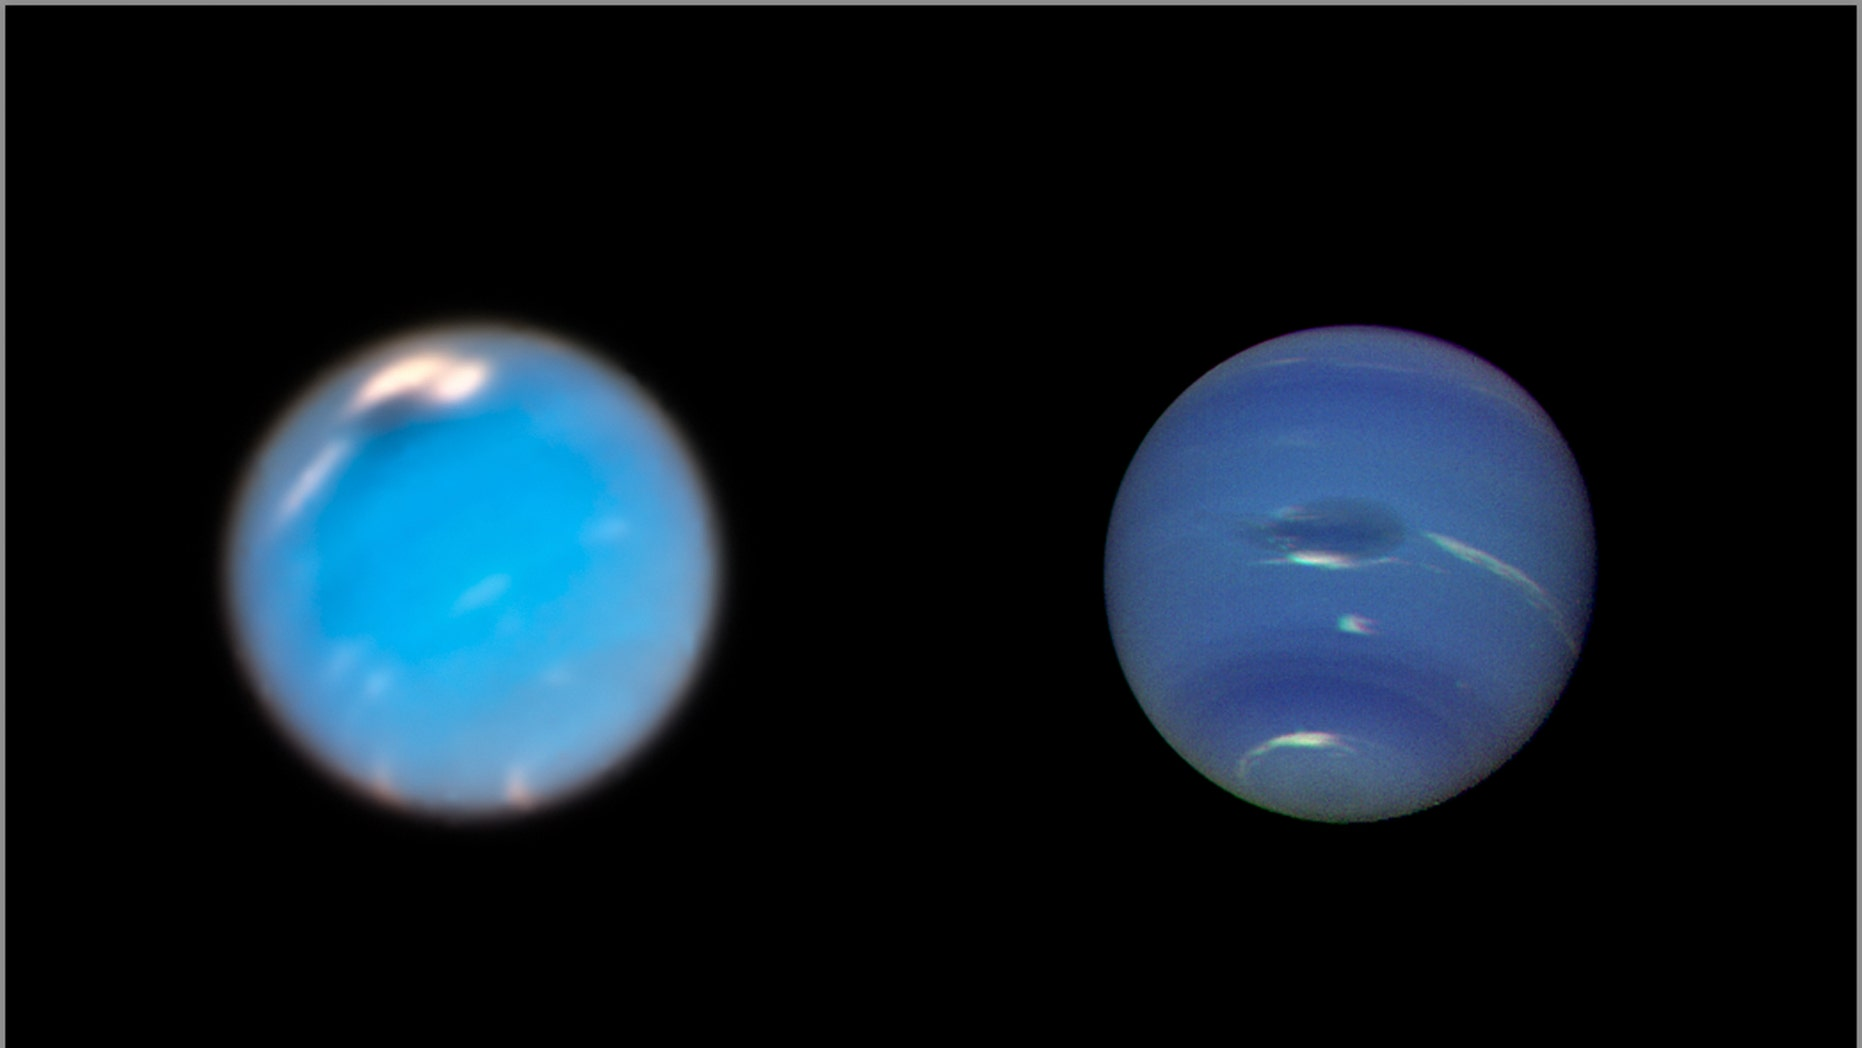 This composite image shows images of storms on Neptune from the Hubble Space Telescope (left) and the Voyager 2 spacecraft (right). The image of Neptune taken by the Hubble Wide Field 3 camera, taken in September and November 2018, shows a new dark storm (top center). In Voyager's image, a storm known as Great Dark Spot (GDS) appears in the center. It is approximately 13,000 km over 6,600 km - as wide as the Earth. White clouds observed hovering near storms have a higher altitude than dark material. (Credit: NASA / ESA / GSFC / JPL)